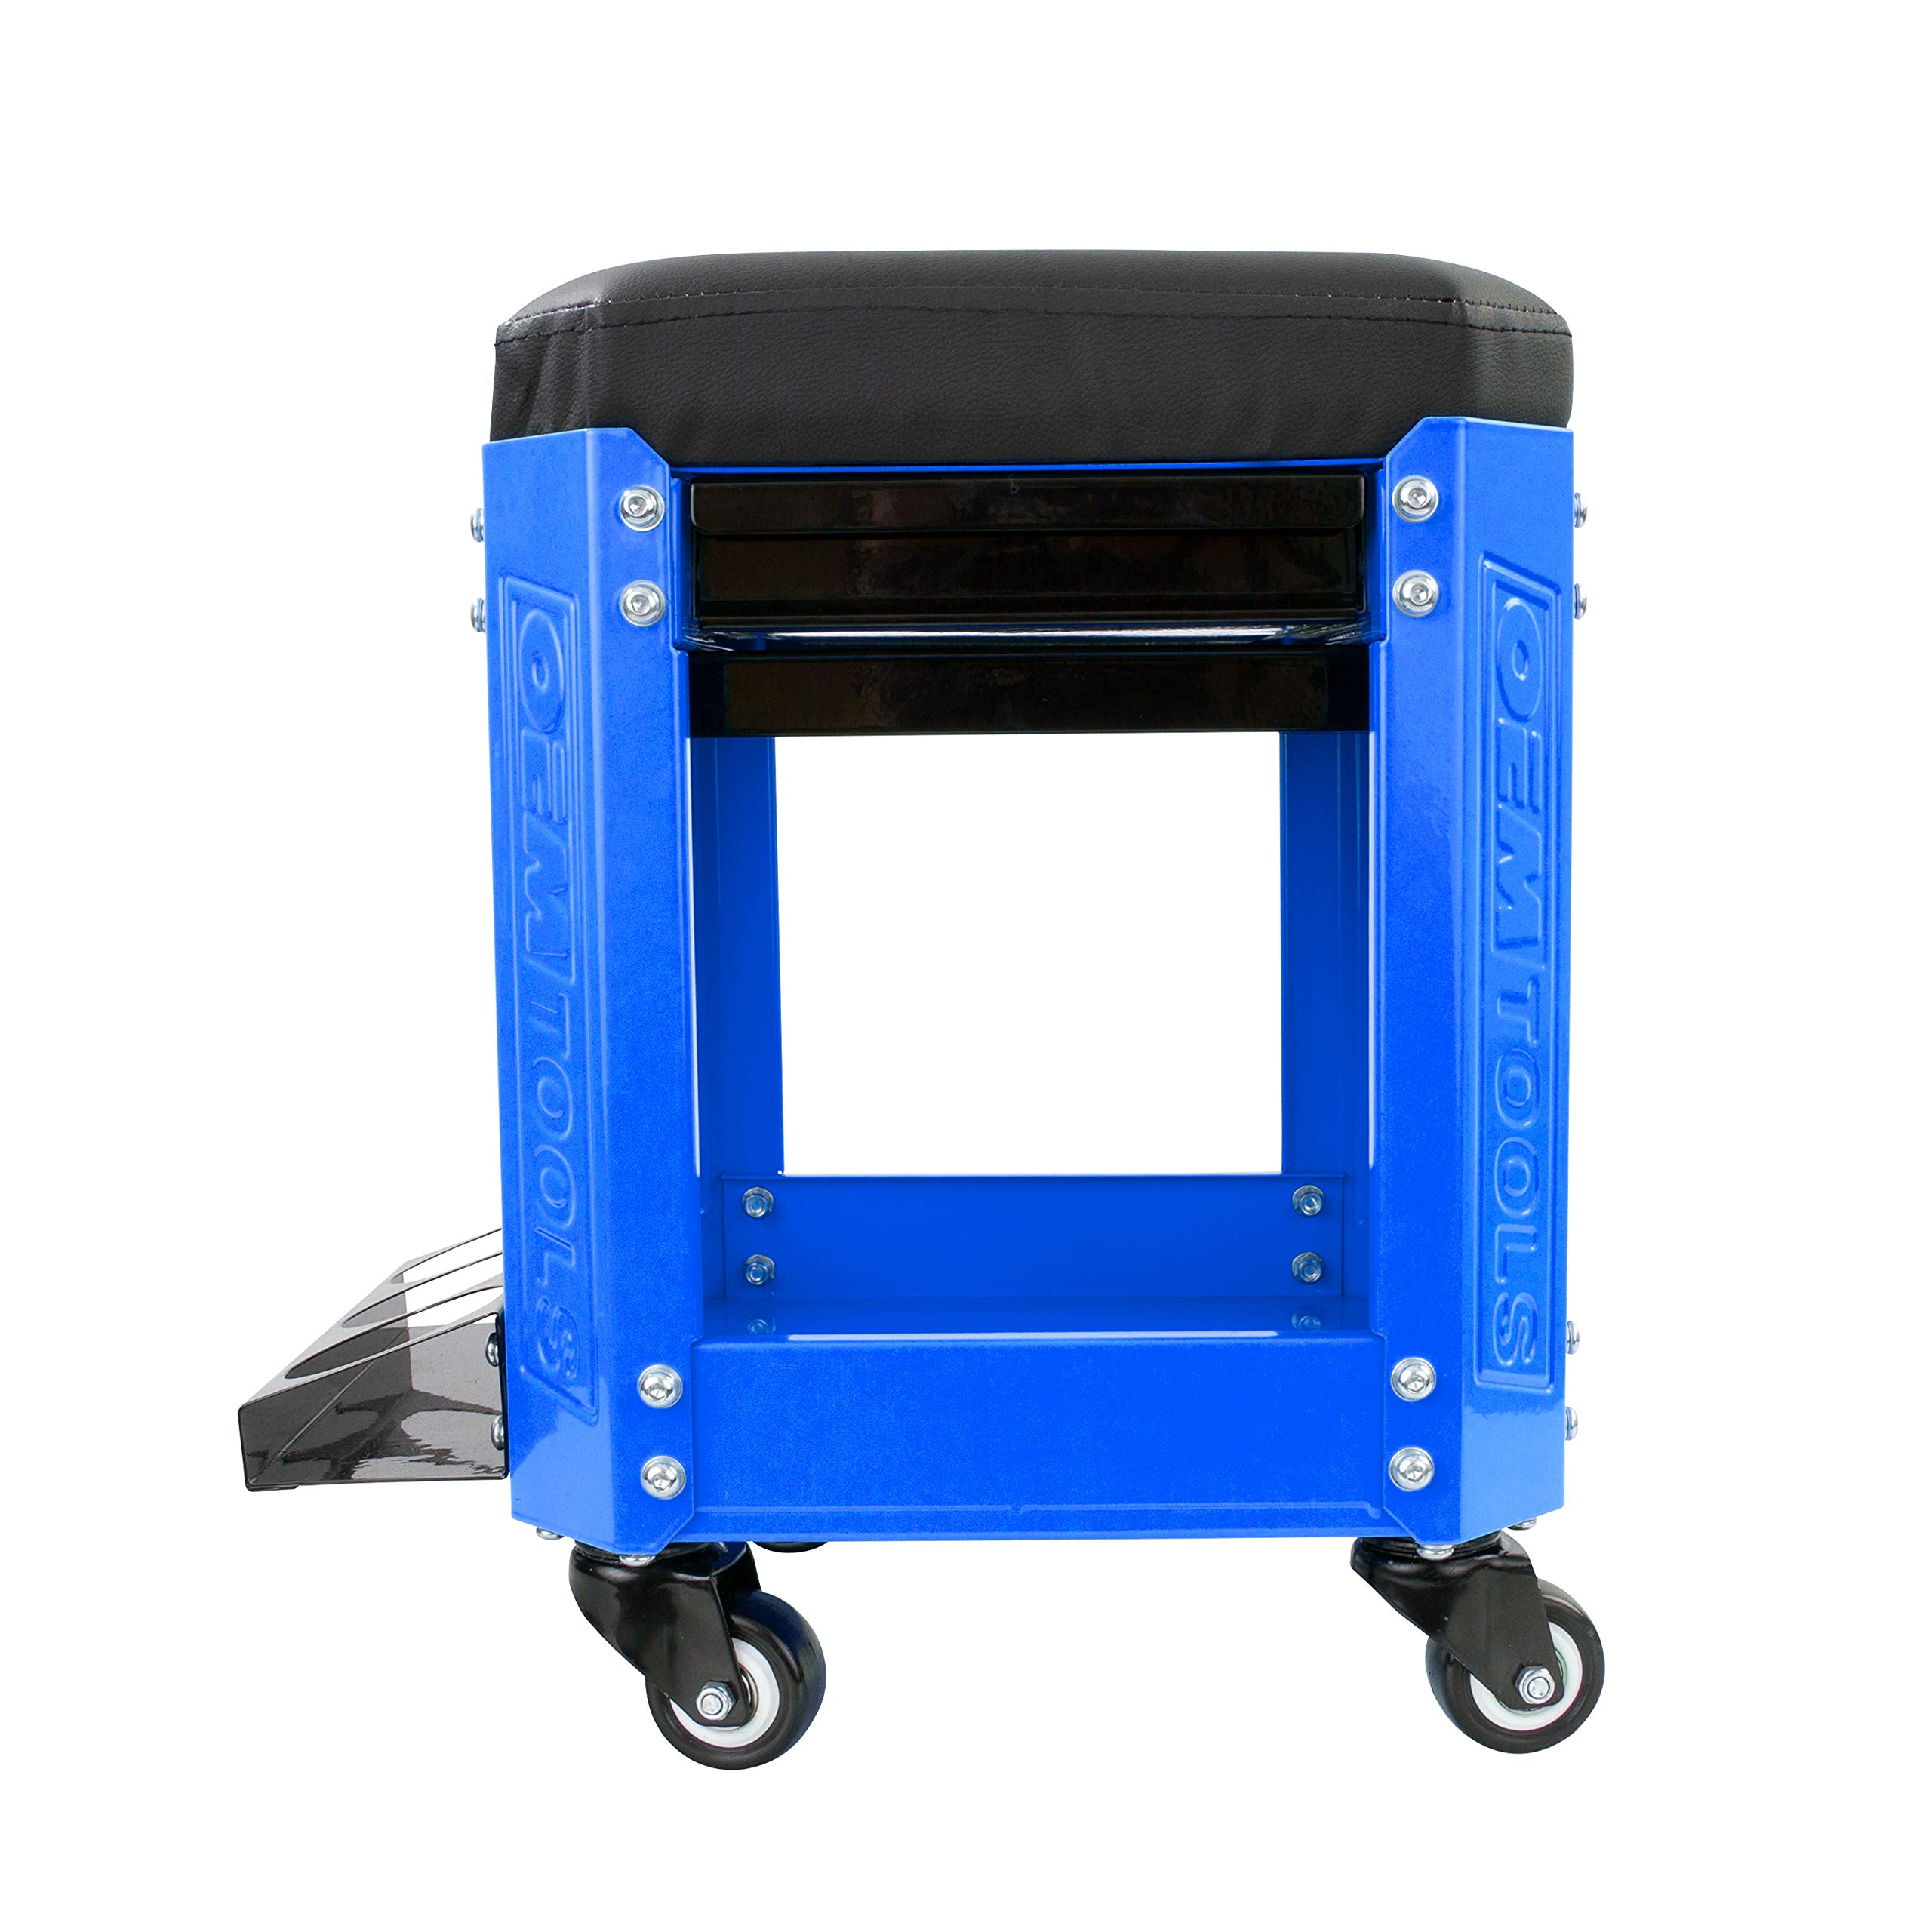 OEMTOOL 24996 Blue Rolling Workshop Creeper Seat with 2 Tool Storage Drawers Under Seat Parts Storage Can Holders by OEMTOOLS (Image #3)